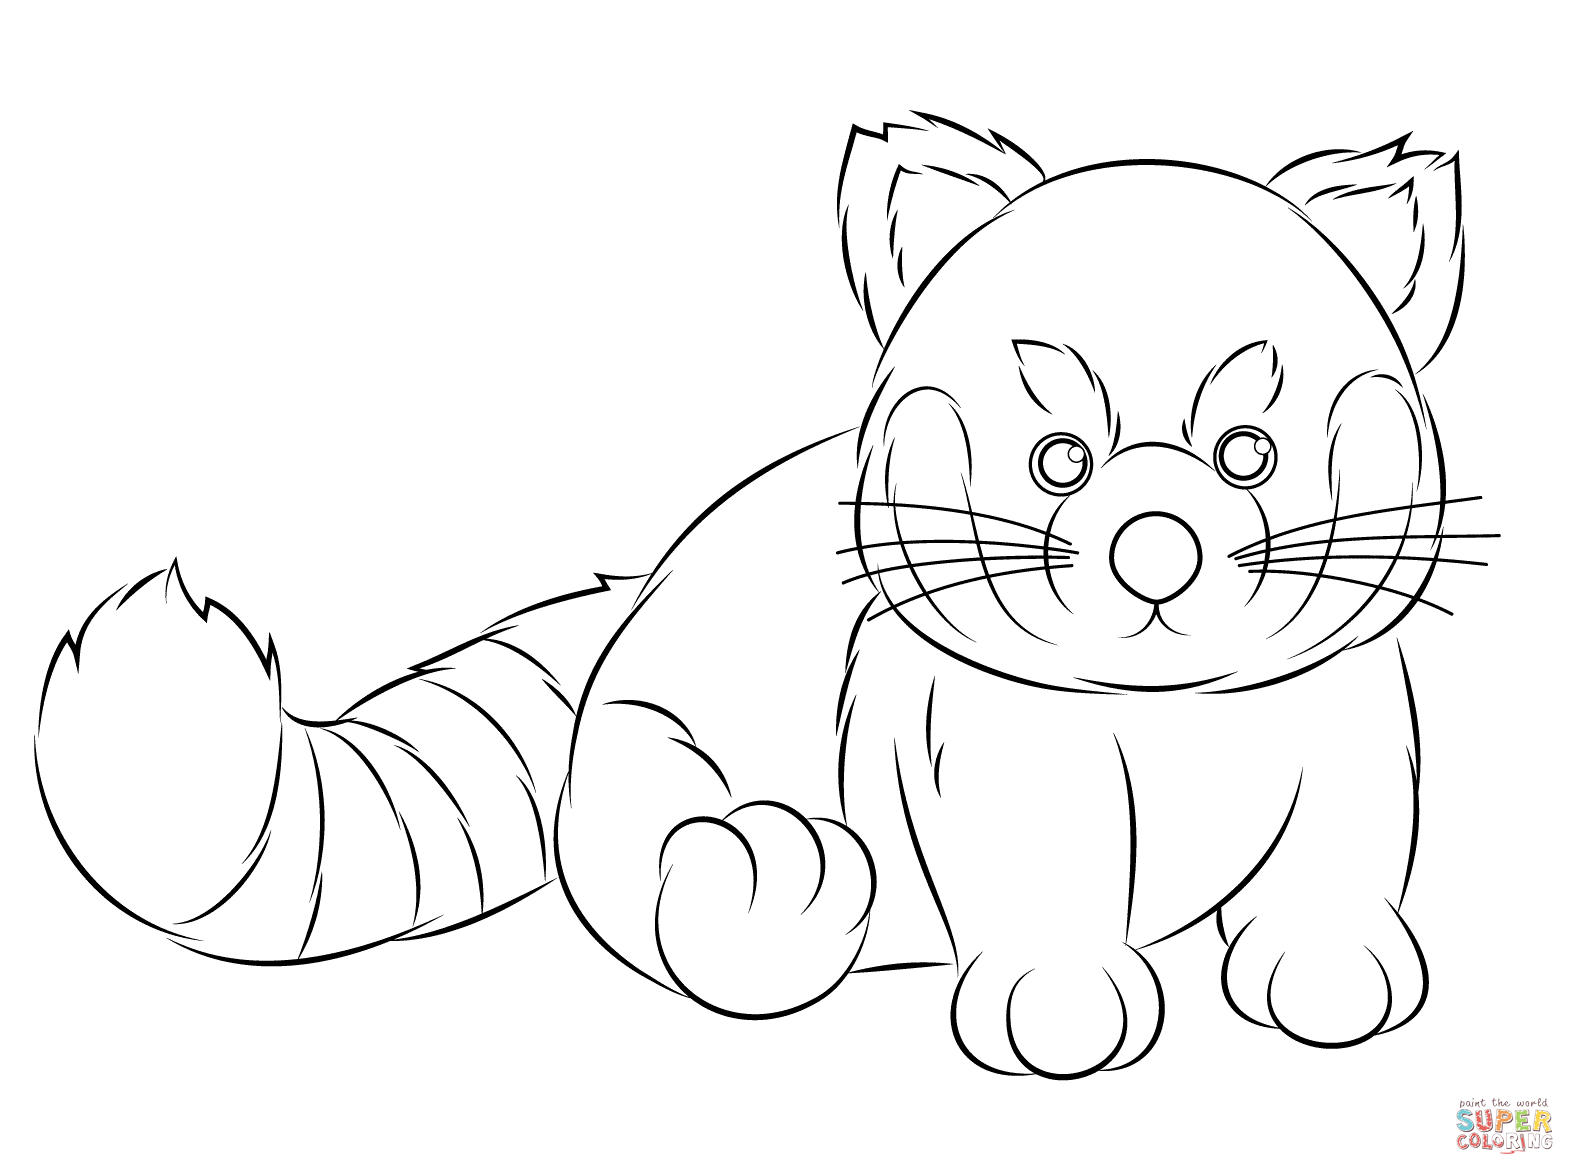 Webkinz Red Panda coloring page